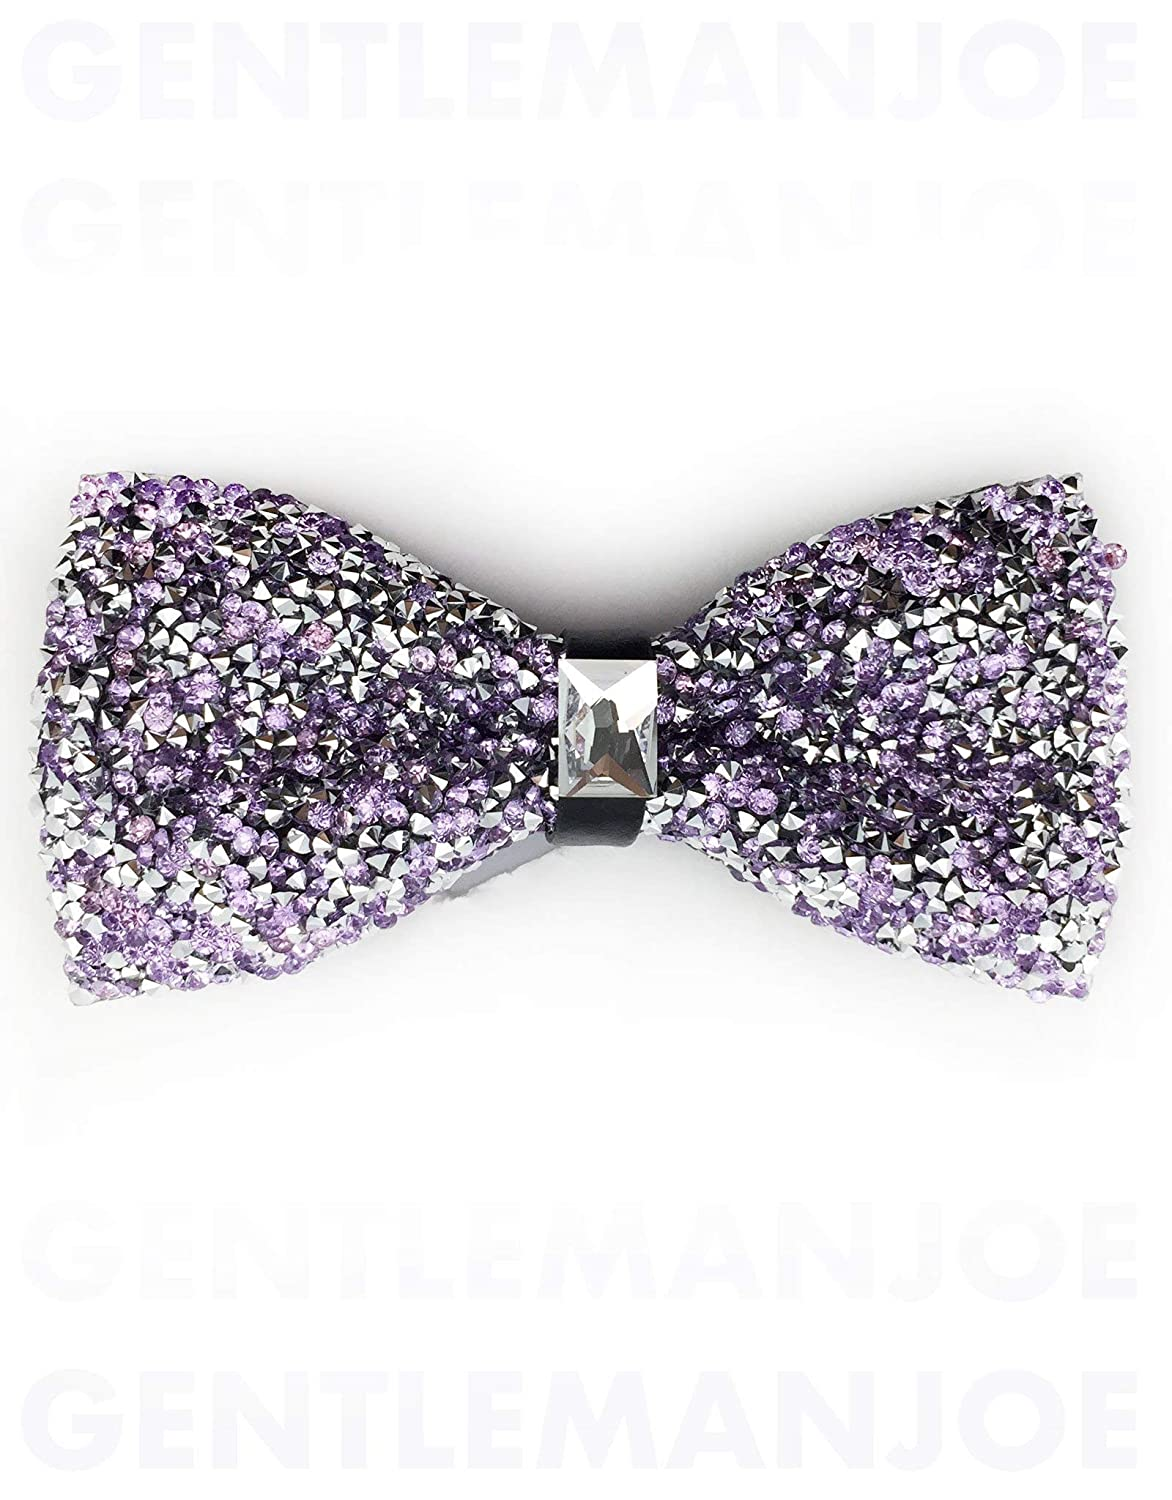 Gentleman Joe Crystal Lilac Purple Bowtie Multicolored